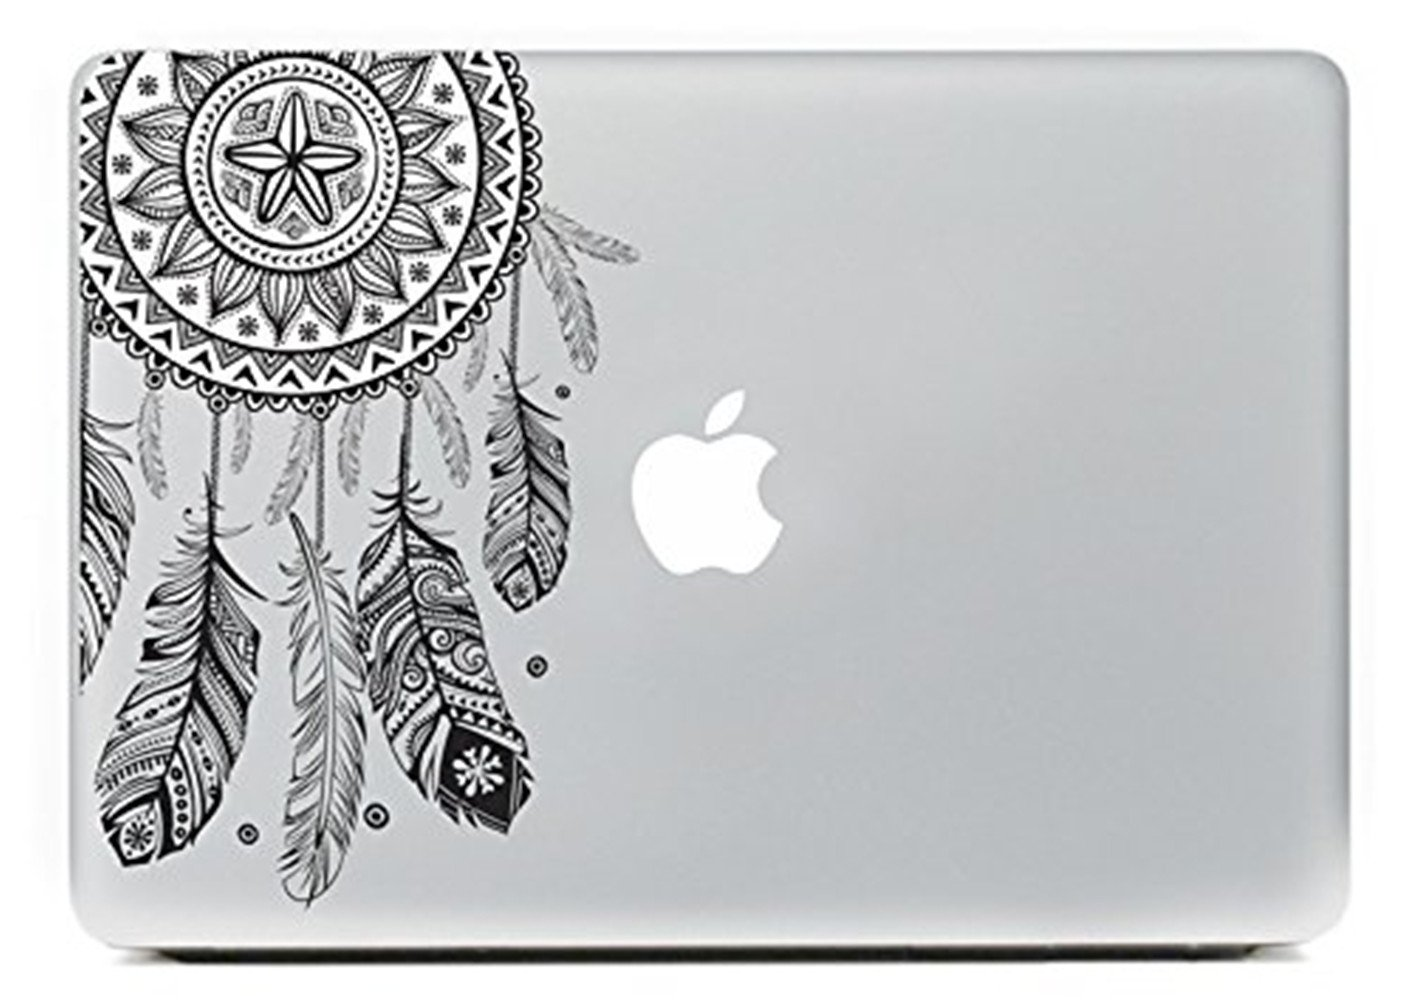 Pro 13 D Morbuy Removable Art Creative Anti-scratch Coating Skin Vinyl Protective Stickers for MacBook Air Macbook Skin Stickers